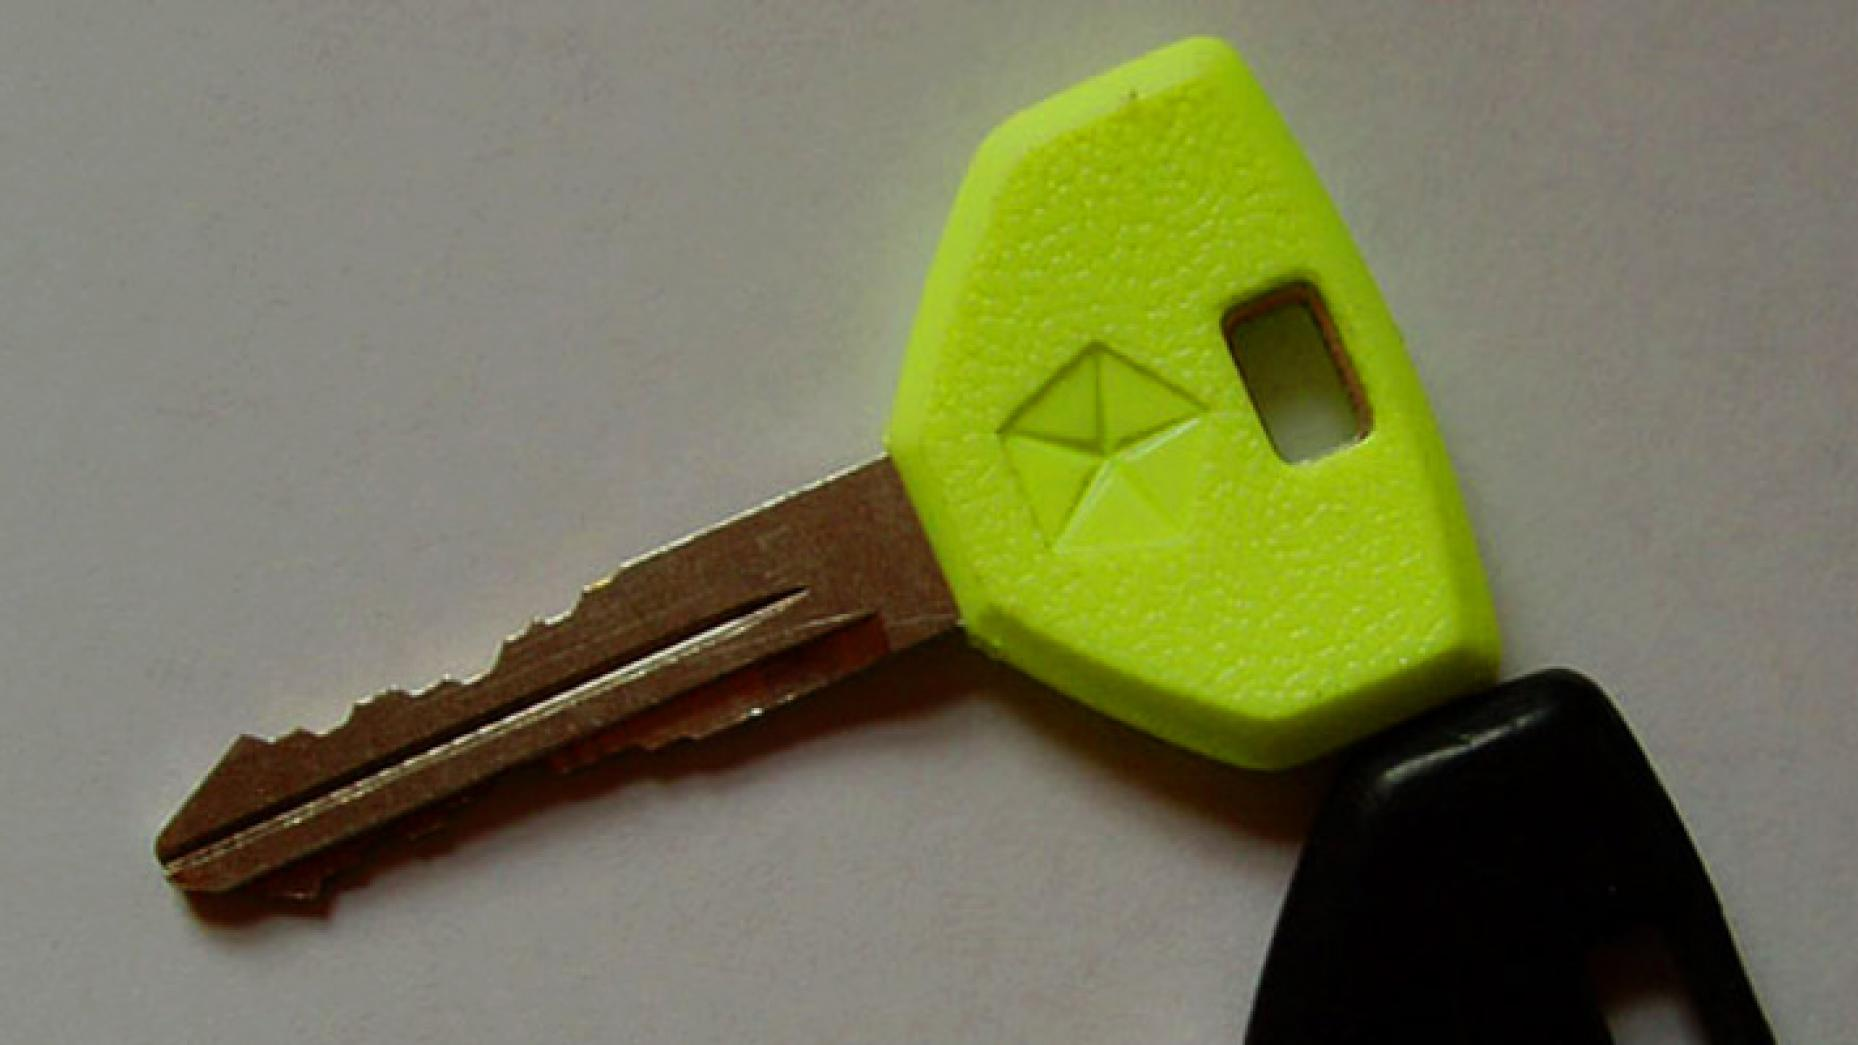 Chrysler Neon Glow In The Dark Car Key